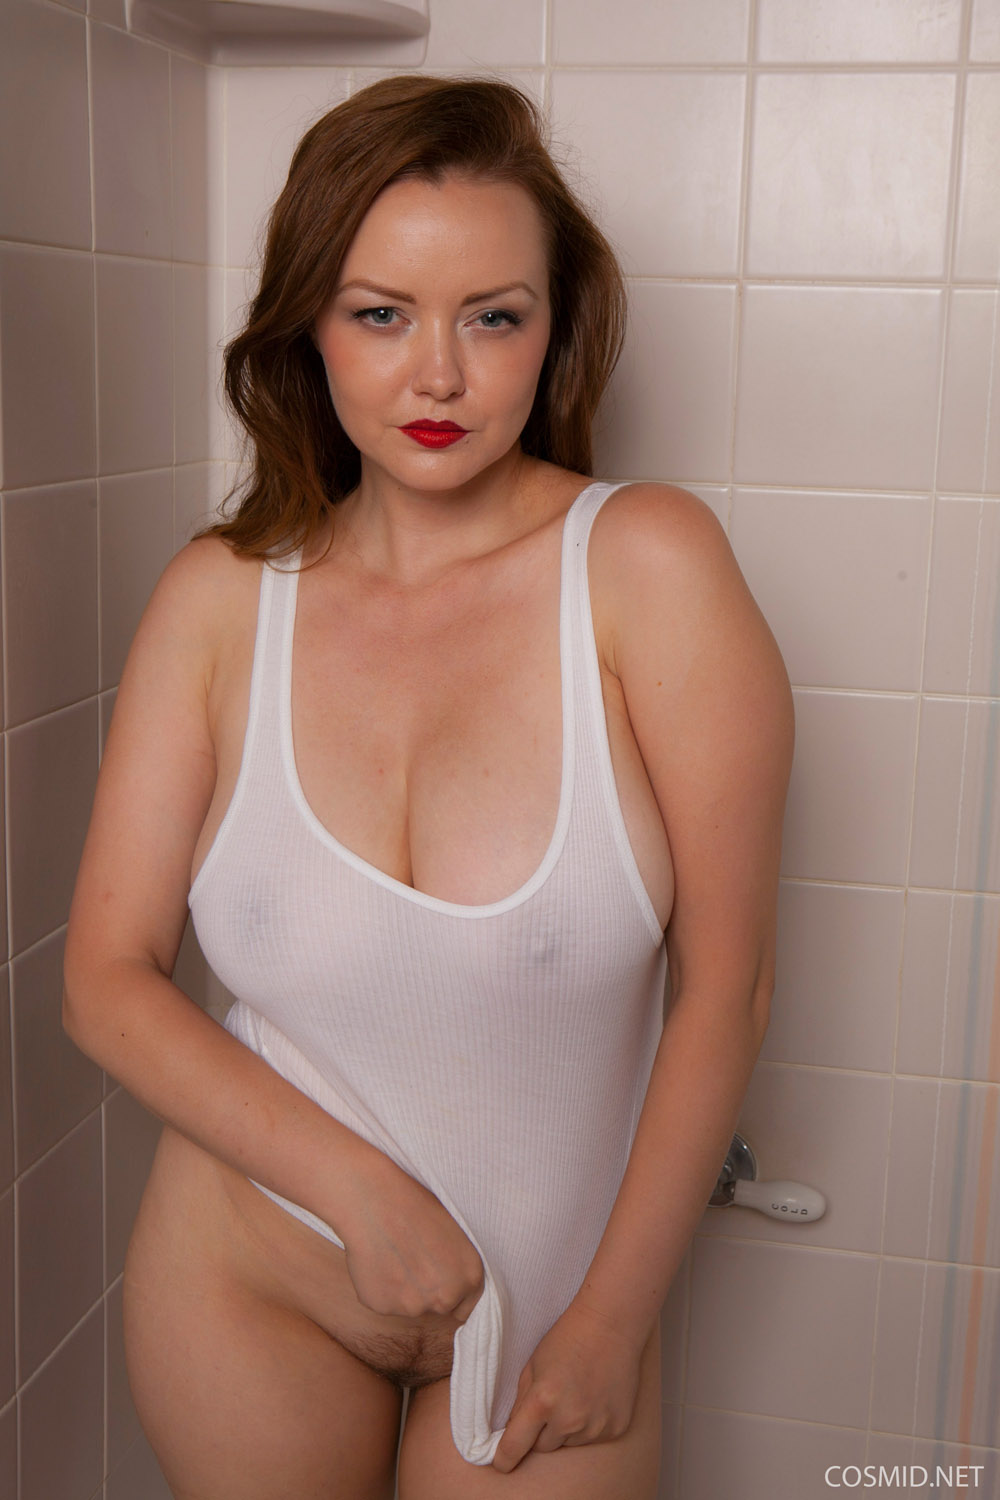 Can Thick naked girls shower